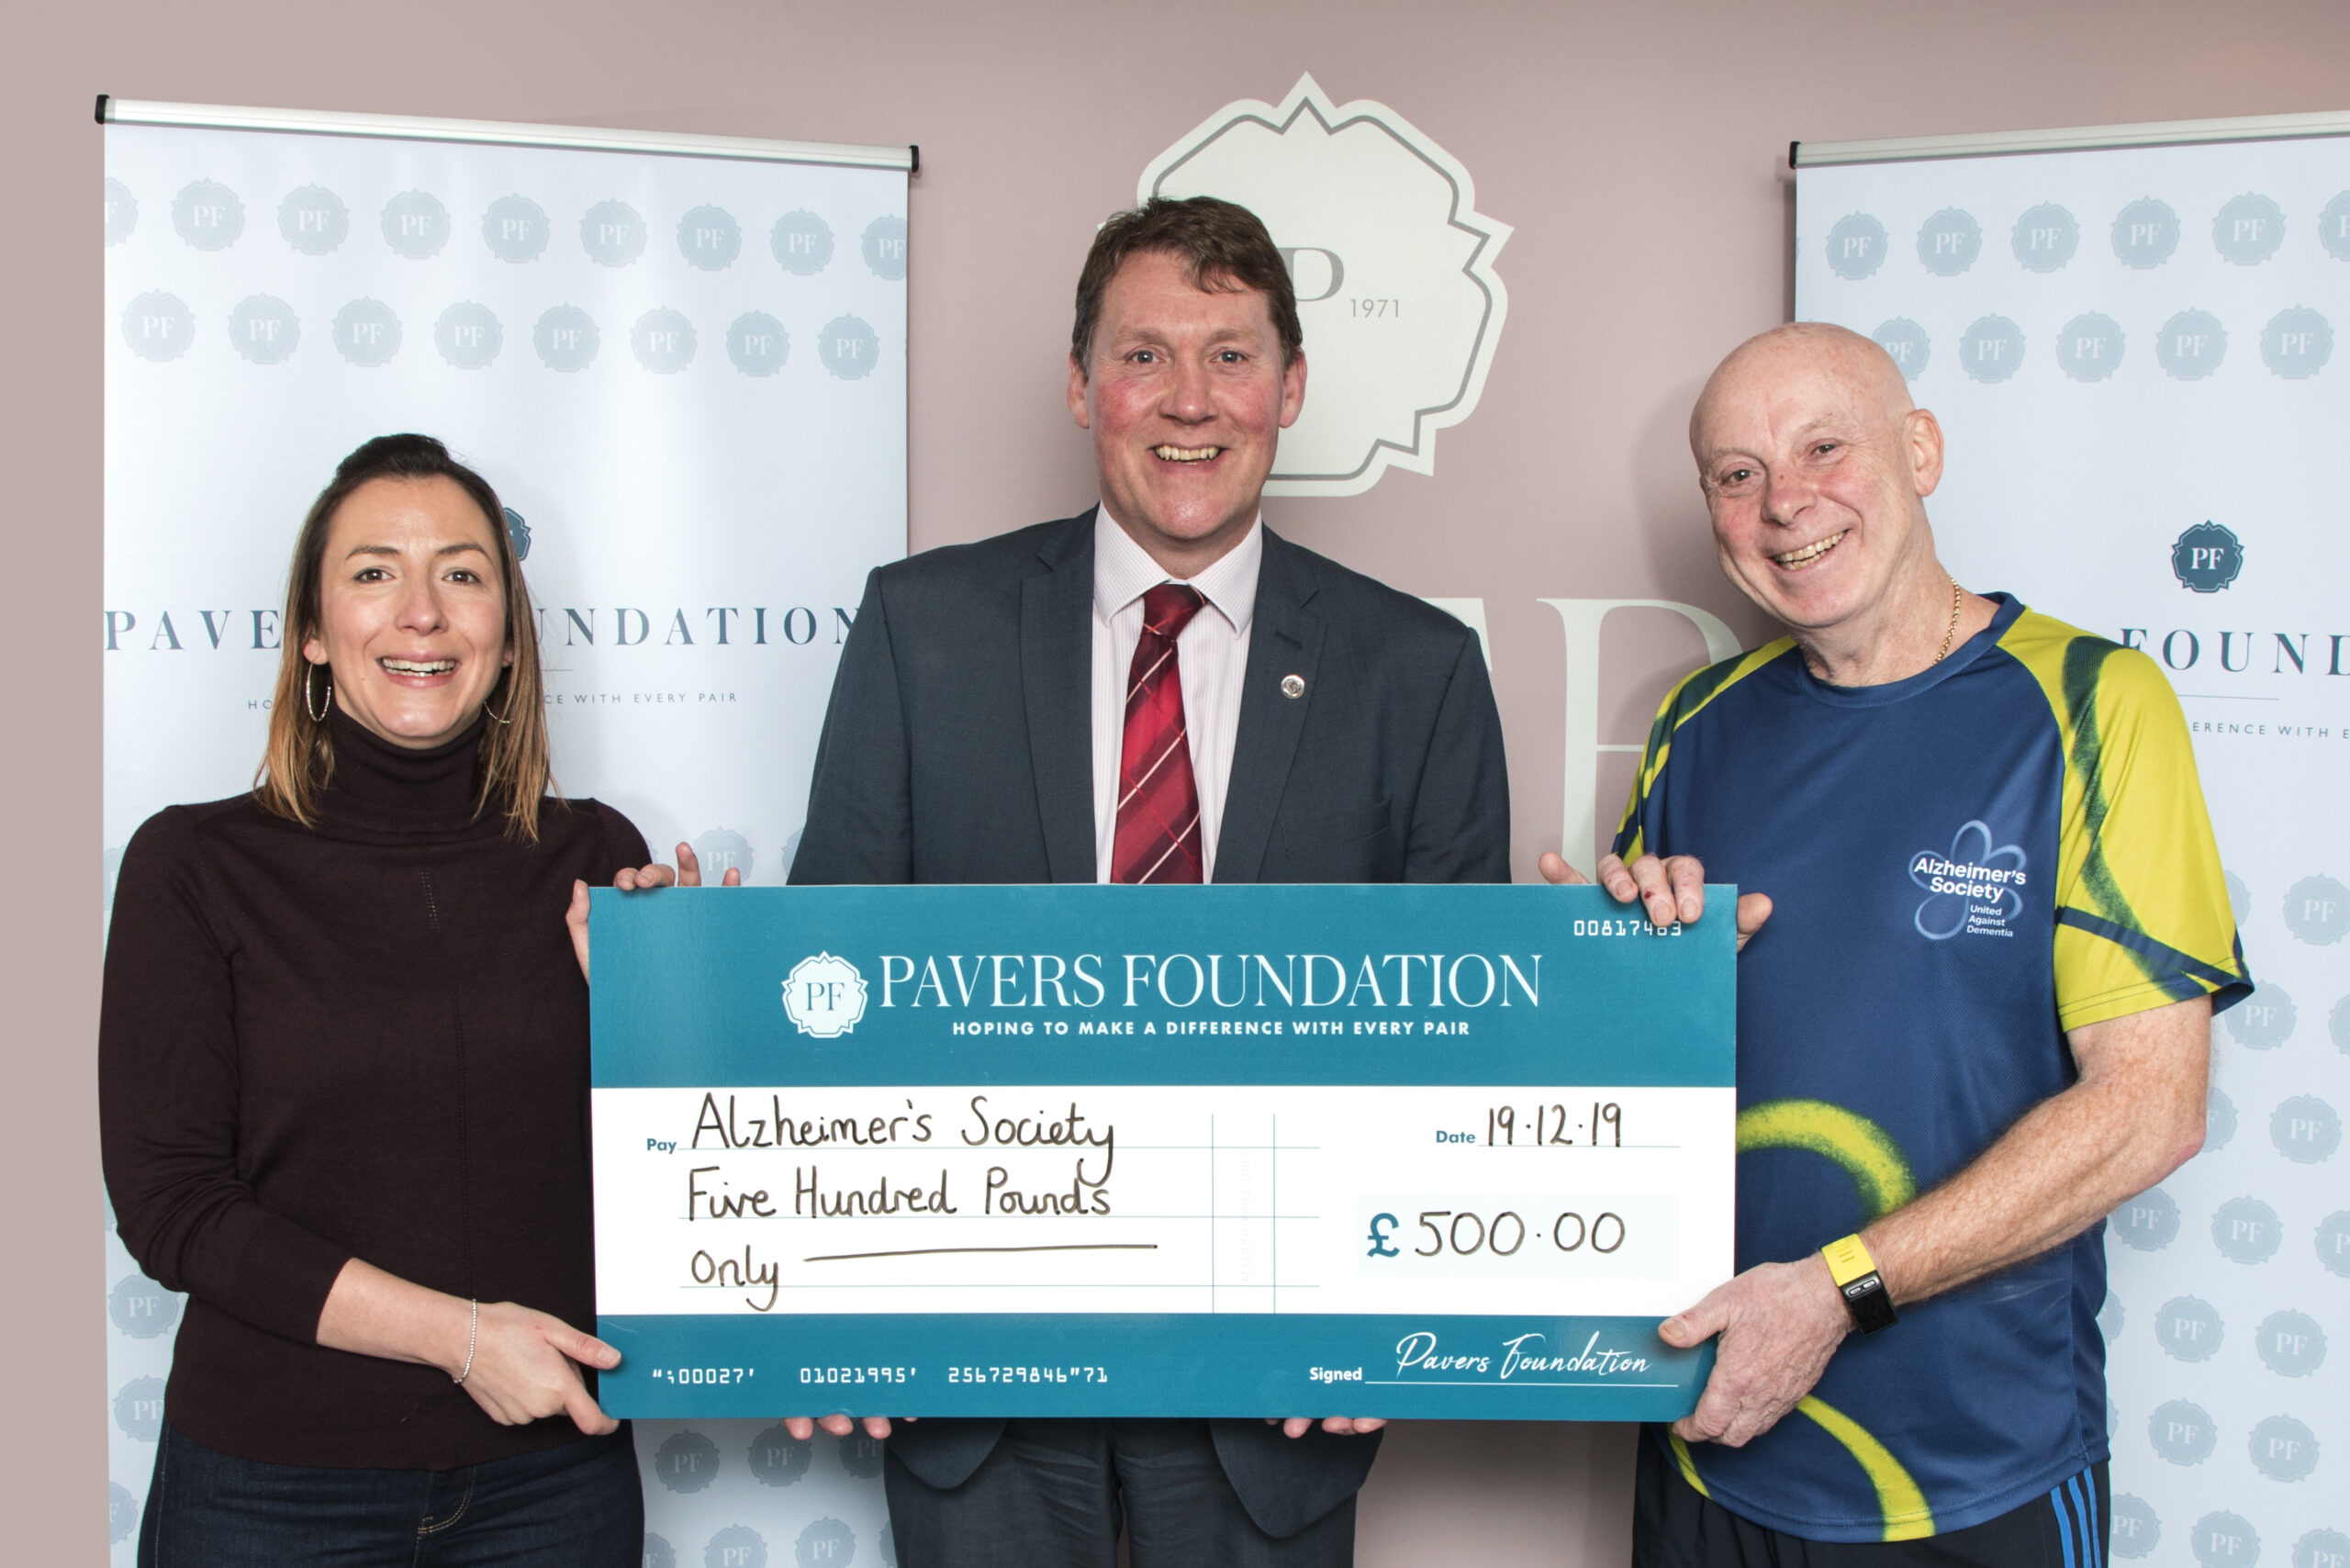 The Pavers Foundation donates £500 to Alzheimer's Society